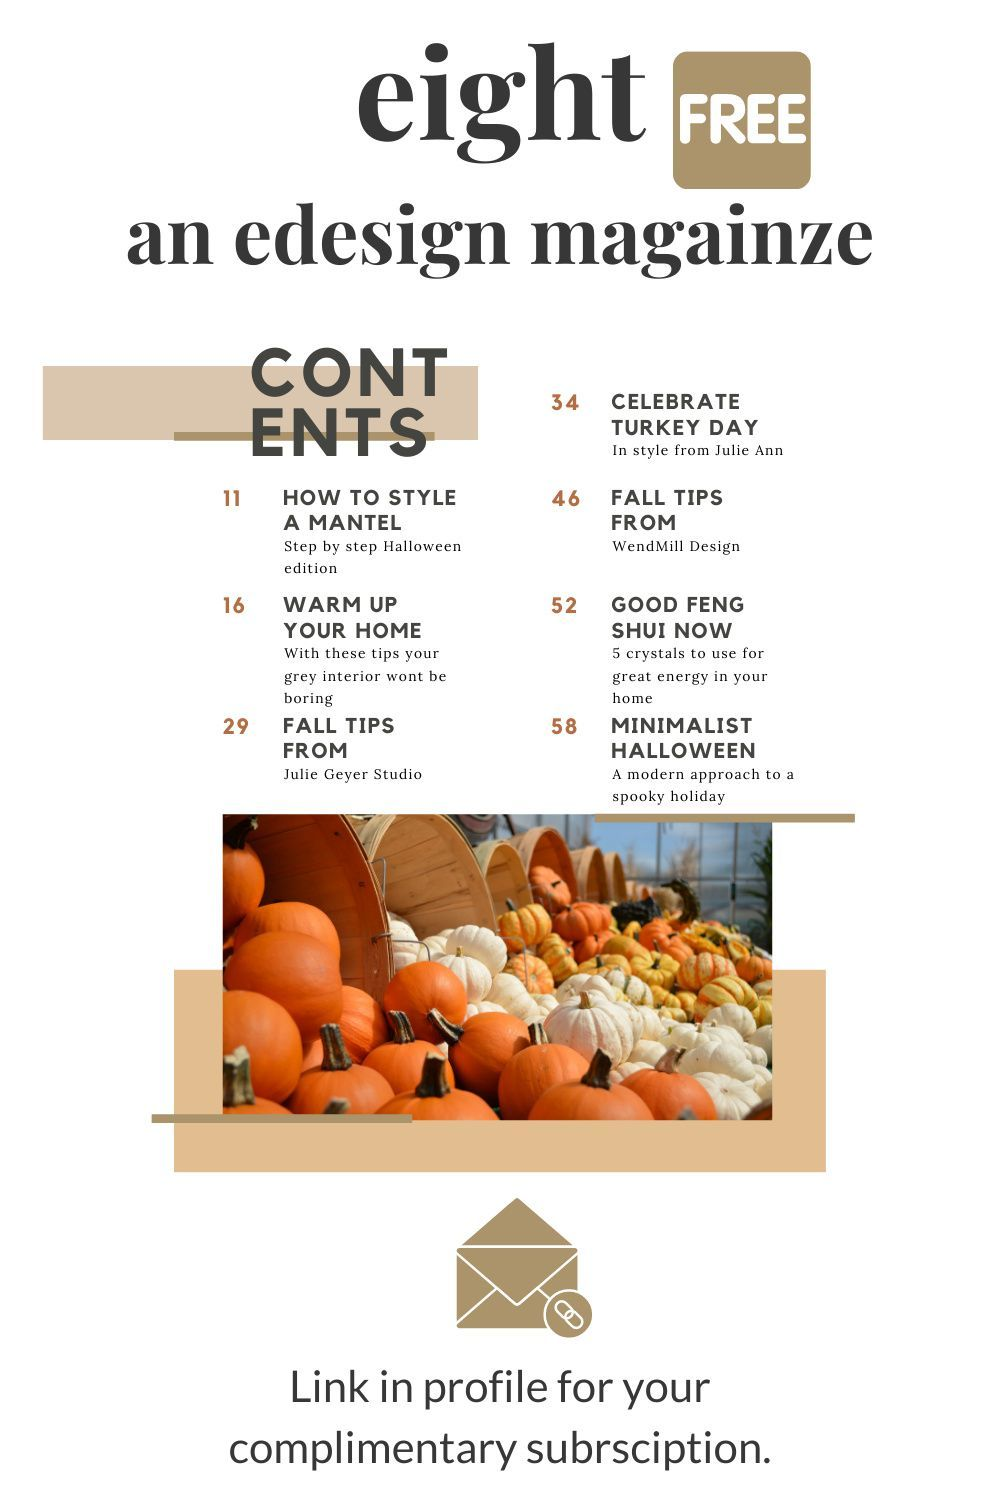 eight is a complimentary online eDesign Magazine brought to you by the original #edesignsisters Subscribe through any of us on our websites and never miss an issue. The first edition, Autumn/Fall 2020 is coming soon! #interiordesignmagazine #free #complimentary #homemagazine #interior design #homedesign #homedecor #home #edesign #virtualinteriordesign